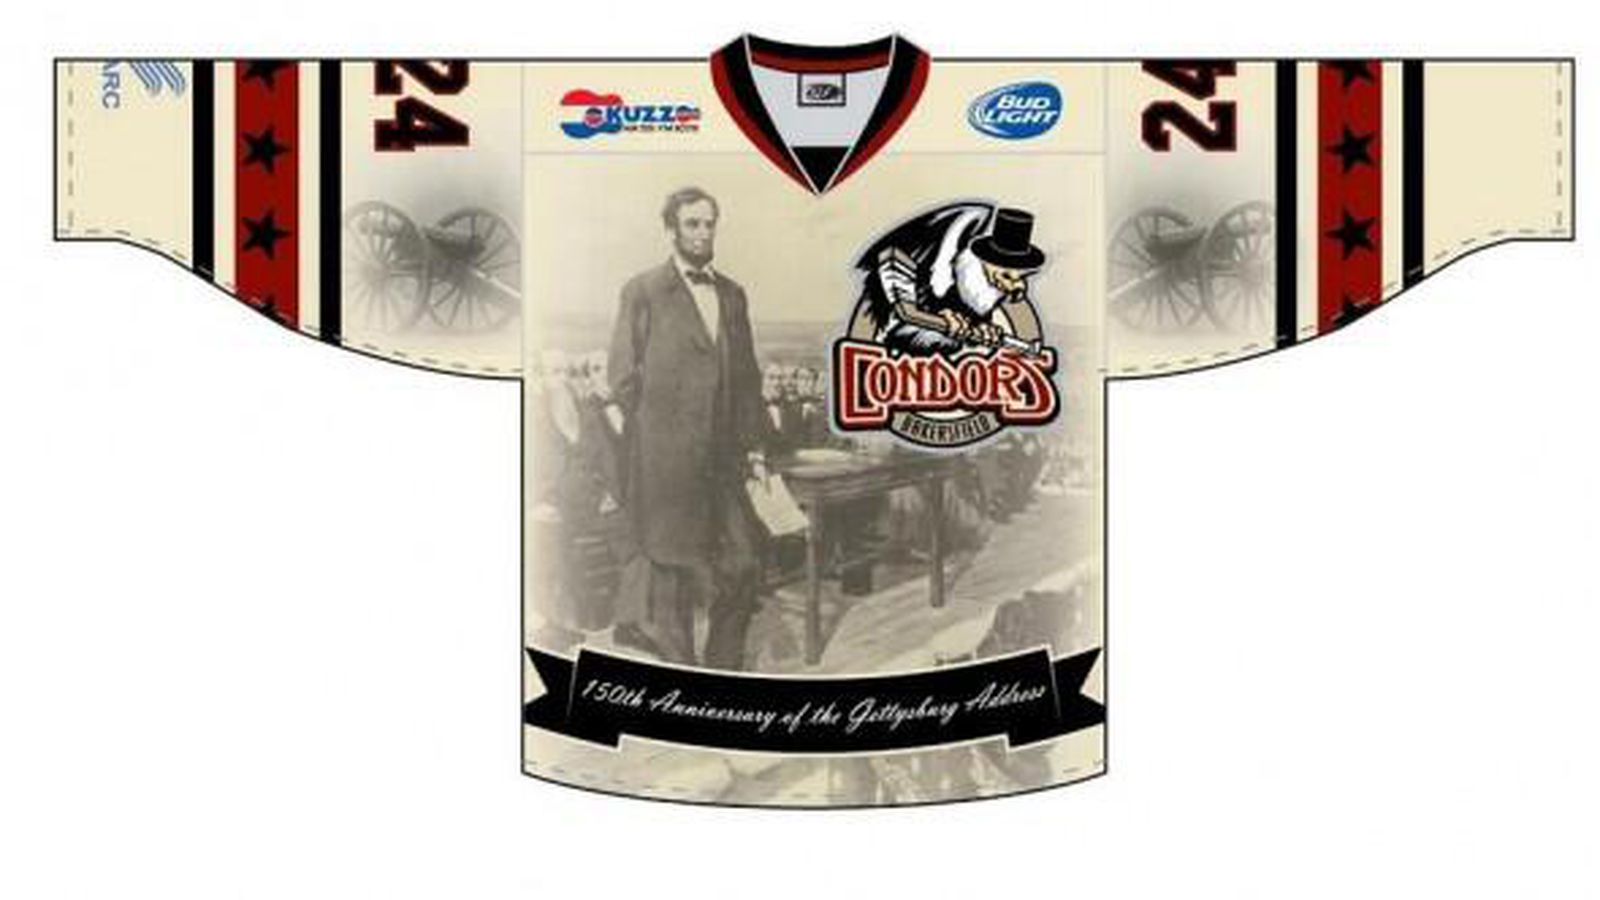 e444a83fb Minor league hockey team Bakersfield Condors unveils Gettysburg Address  jerseys with Gettysburg Address on them - SBNation.com